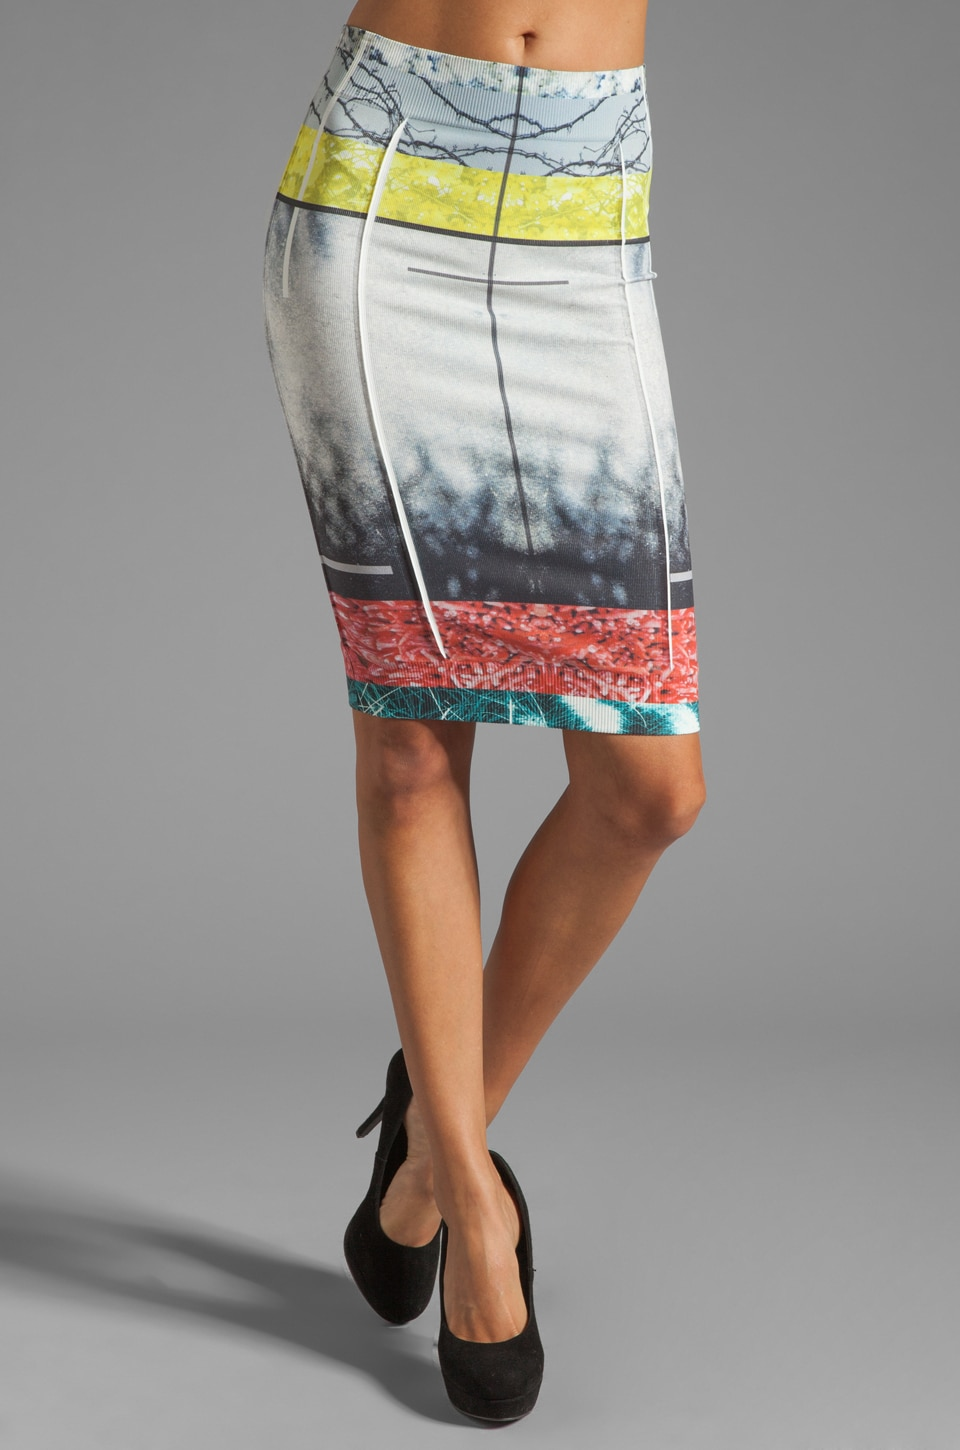 Thatcher Minimalist Tube Skirt in Neo Realia